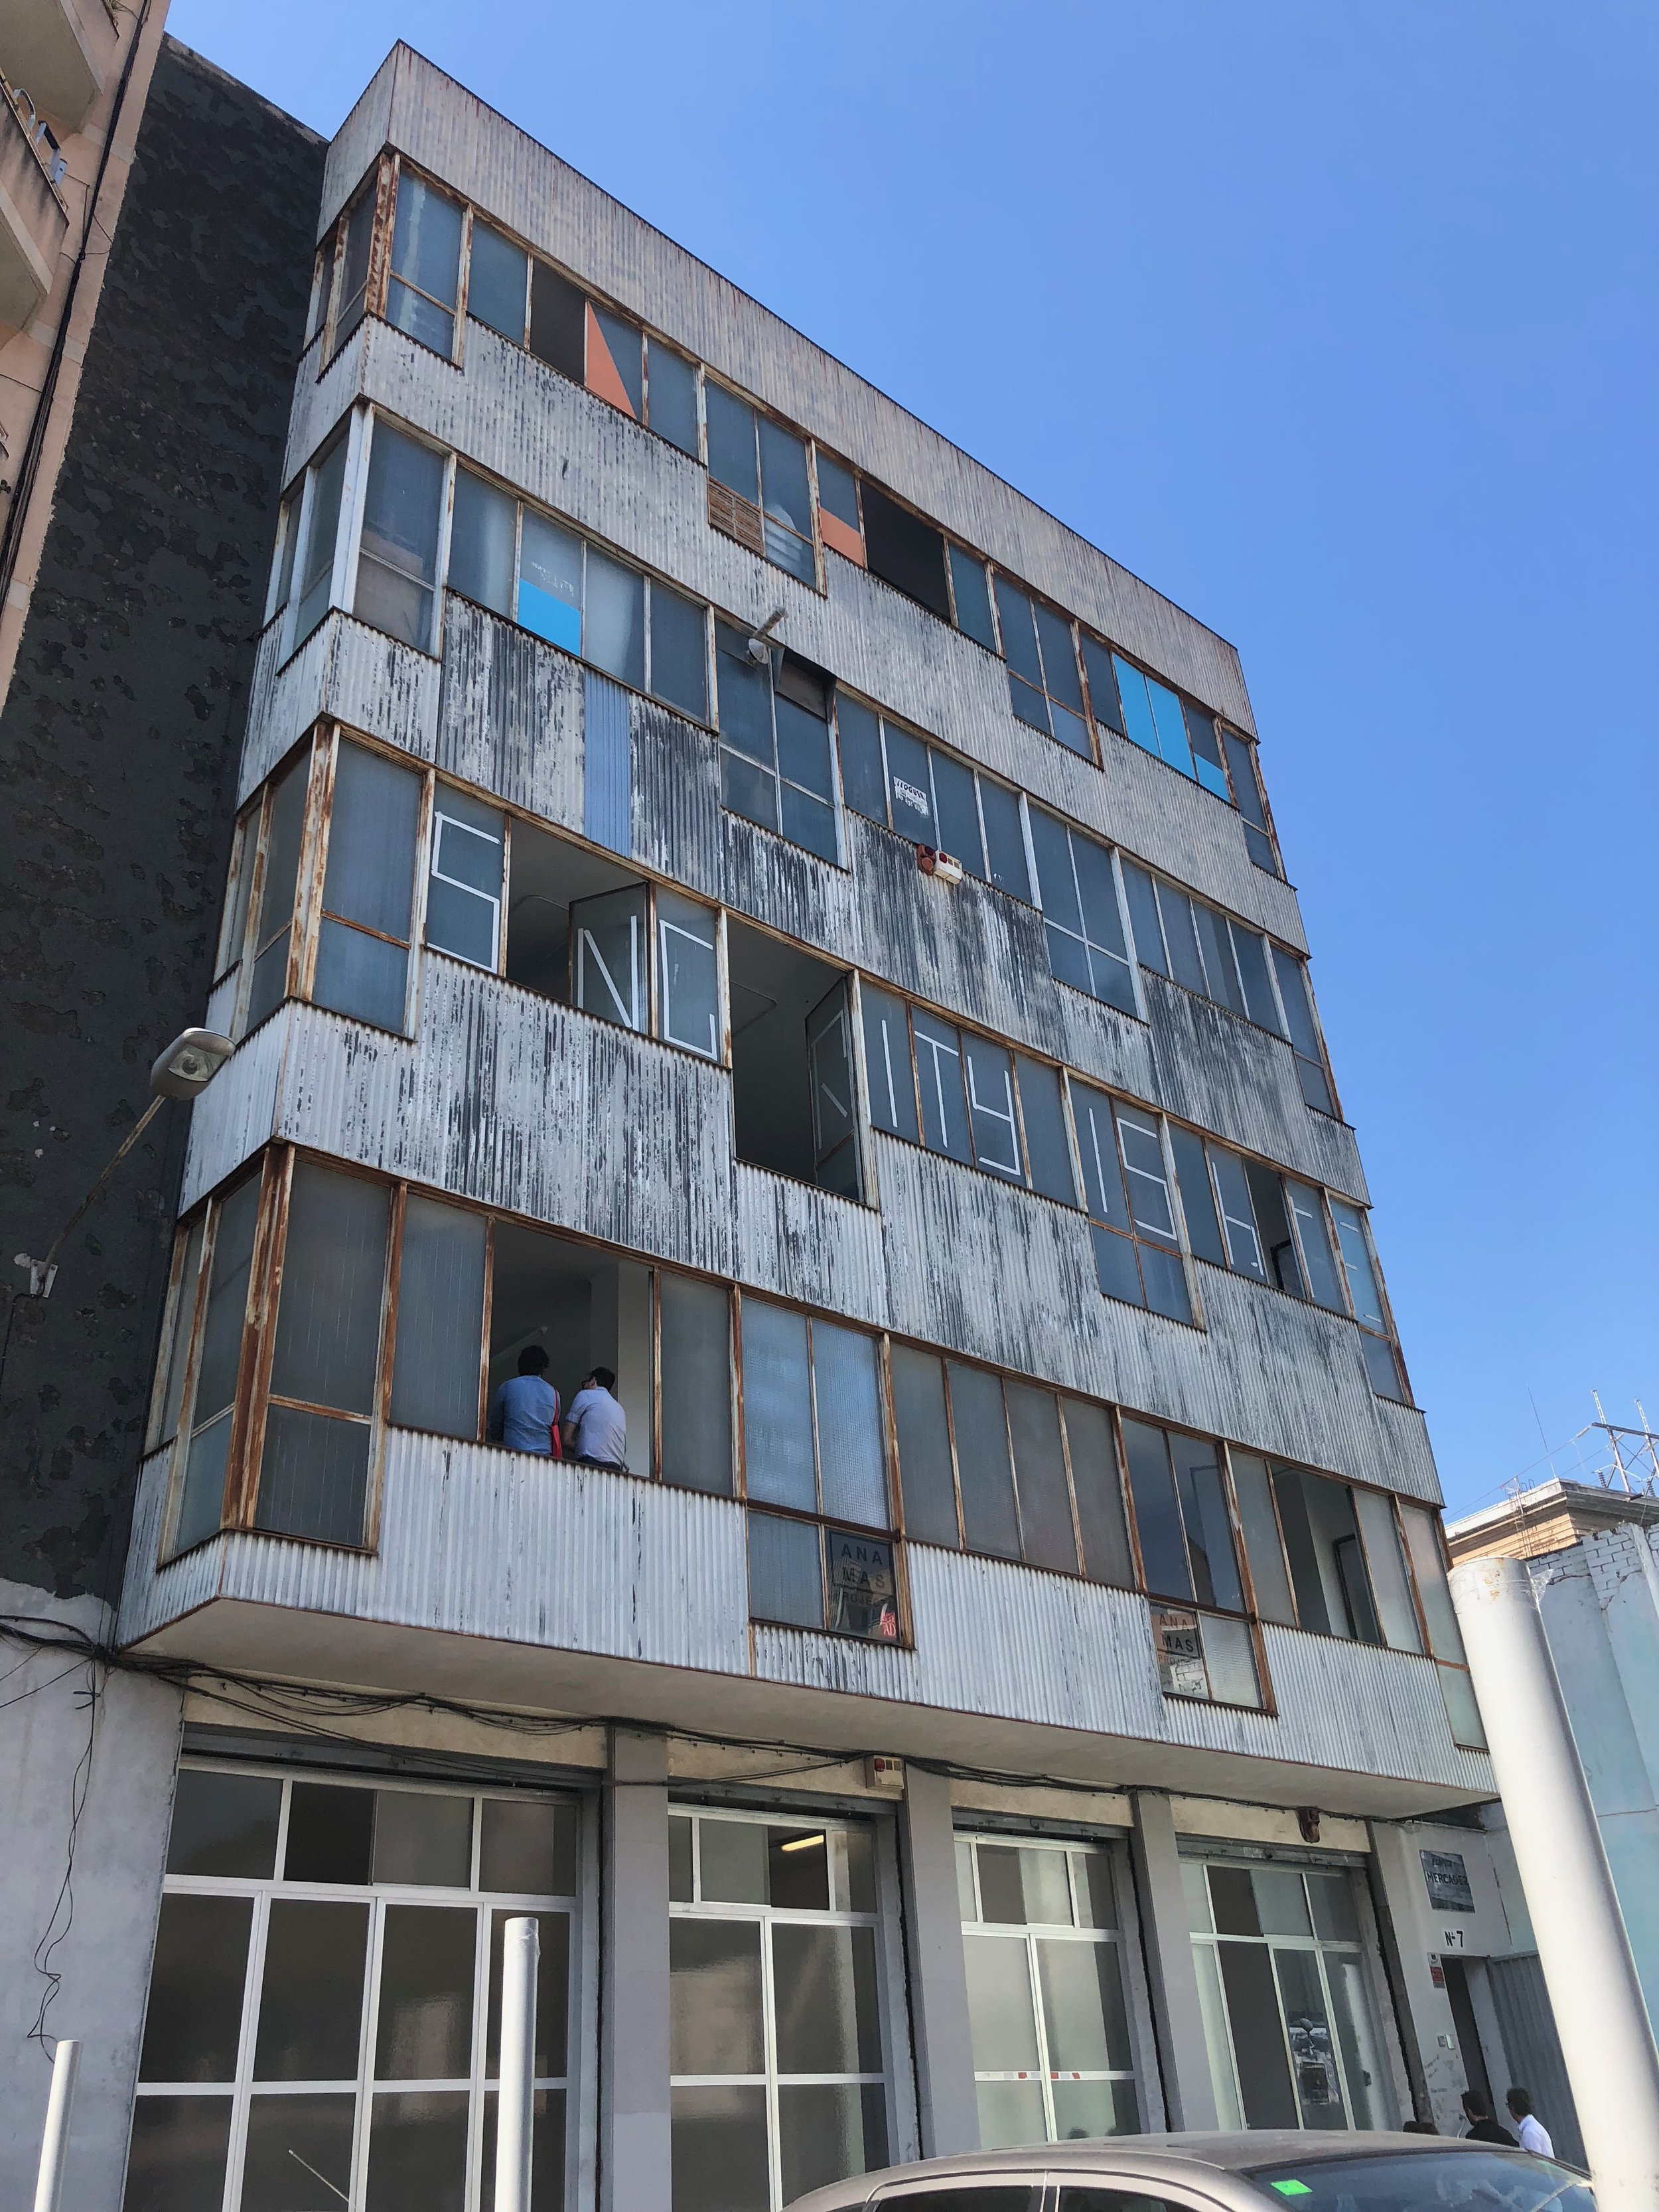 The industrial building that houses Ana Was Projects and Drama 34